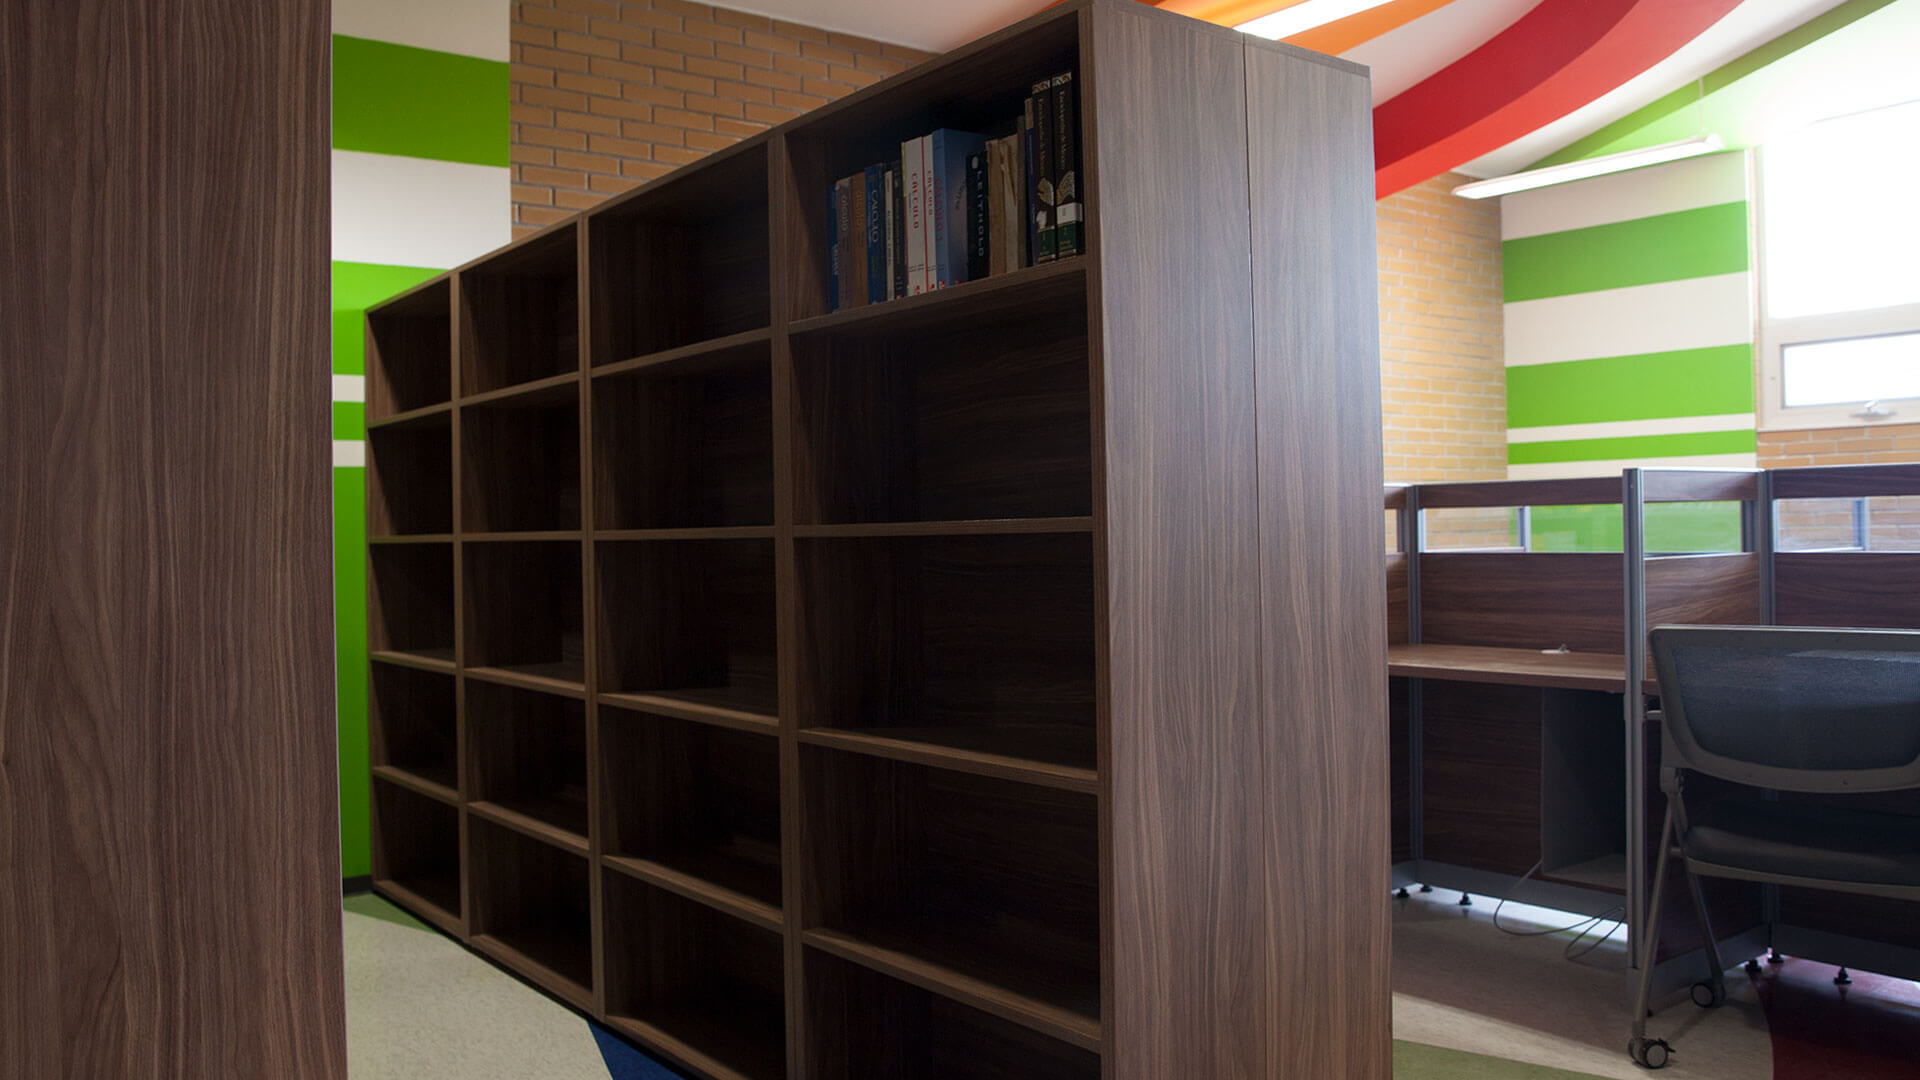 Fill the Nations School Library with Resources